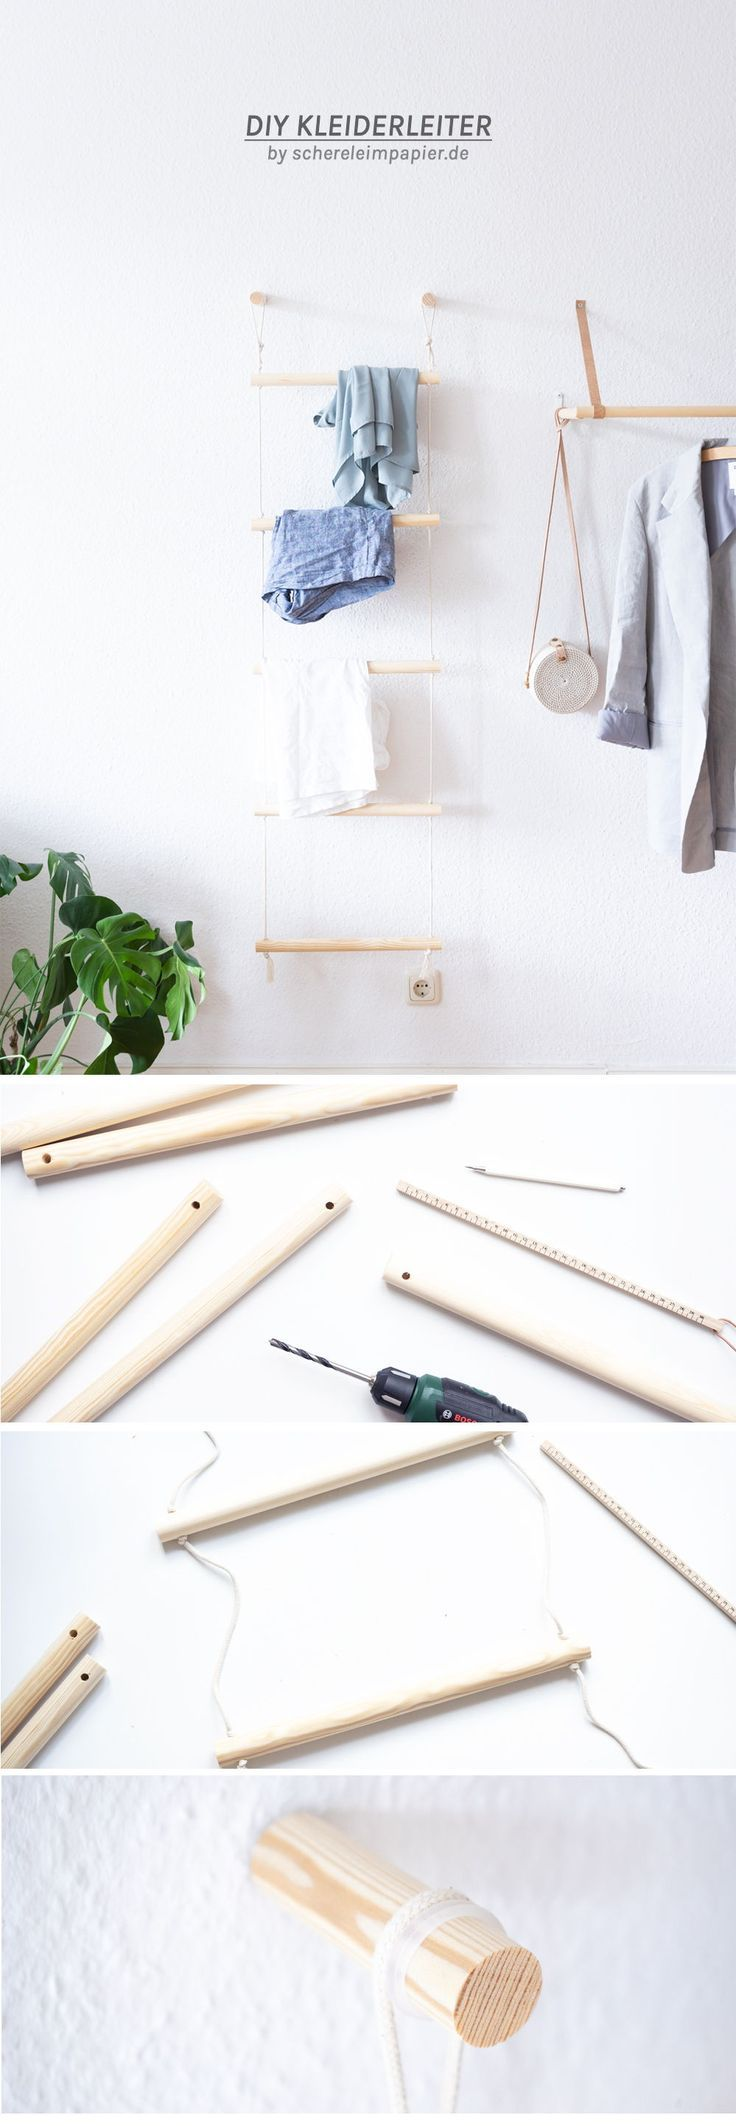 Creating order in style building DIY clothes ladder  Creating order in style building DIY clothes ladder